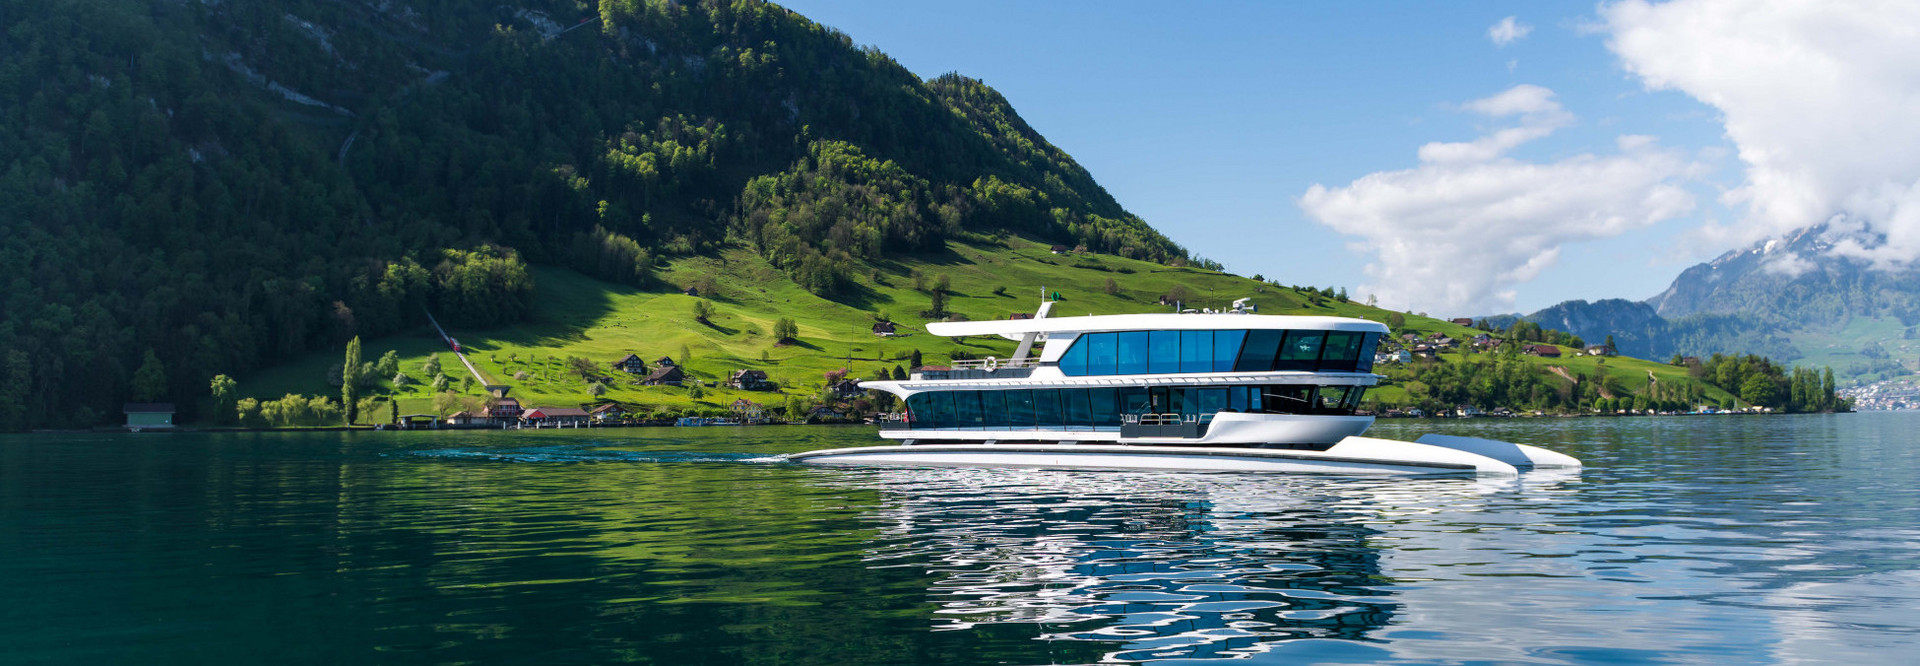 The motor vessel Bürgenstock sails for Lucerne on a beautiful summer day.